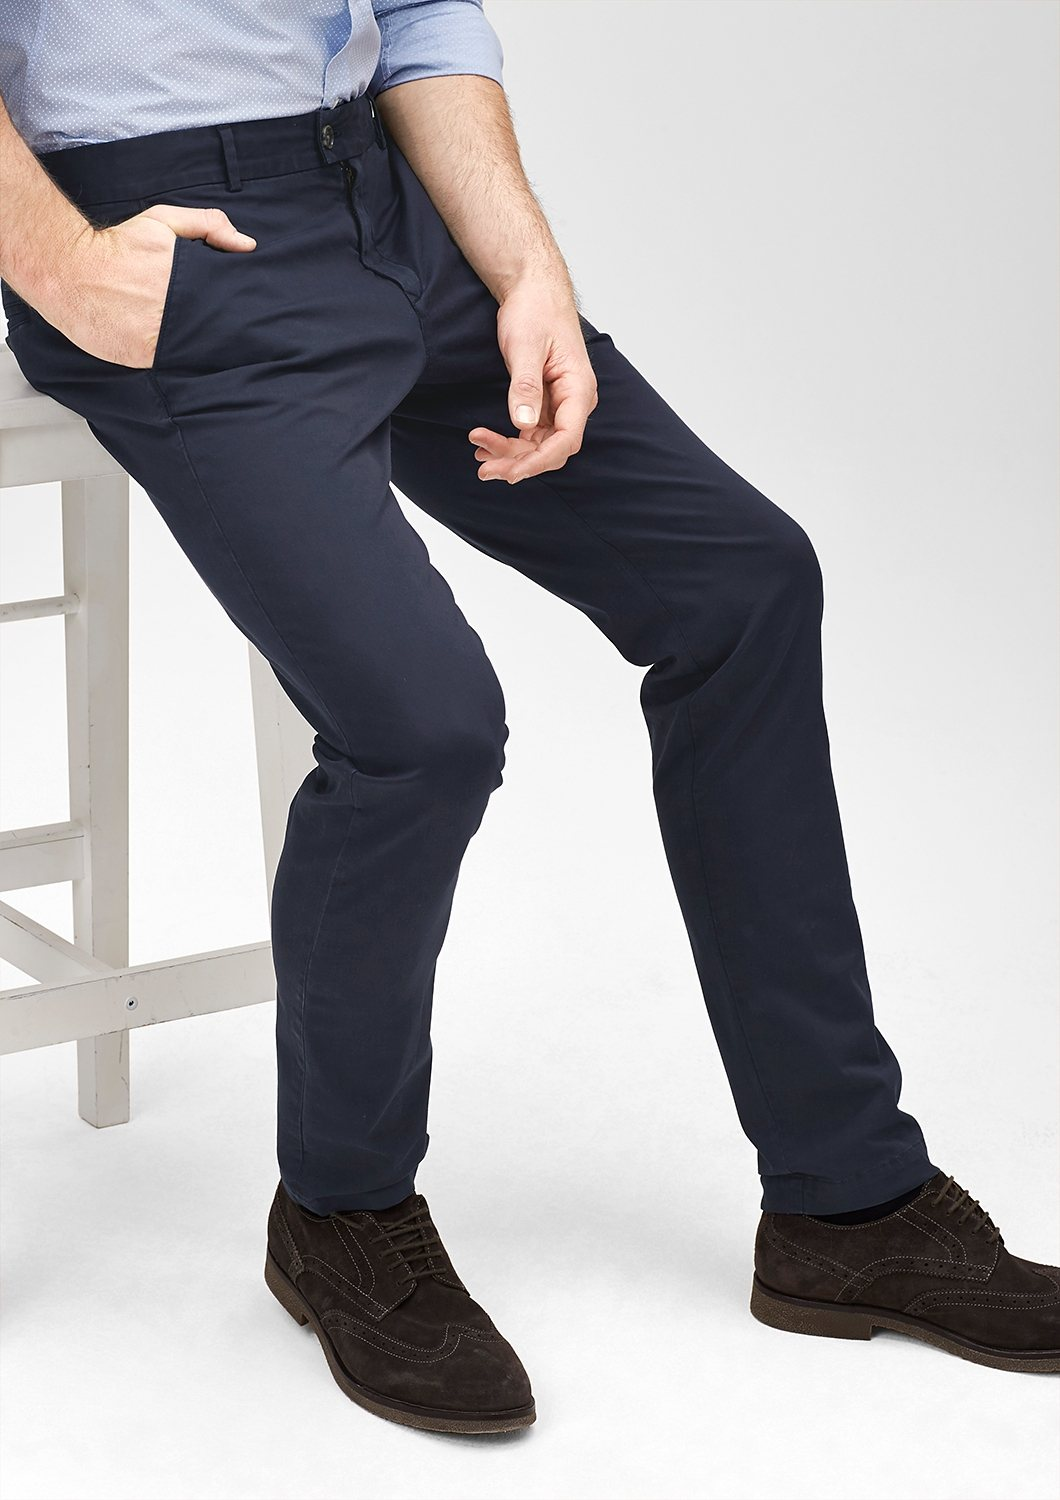 s.Oliver BLACK LABEL Mauro Slim: Stretchige Chino